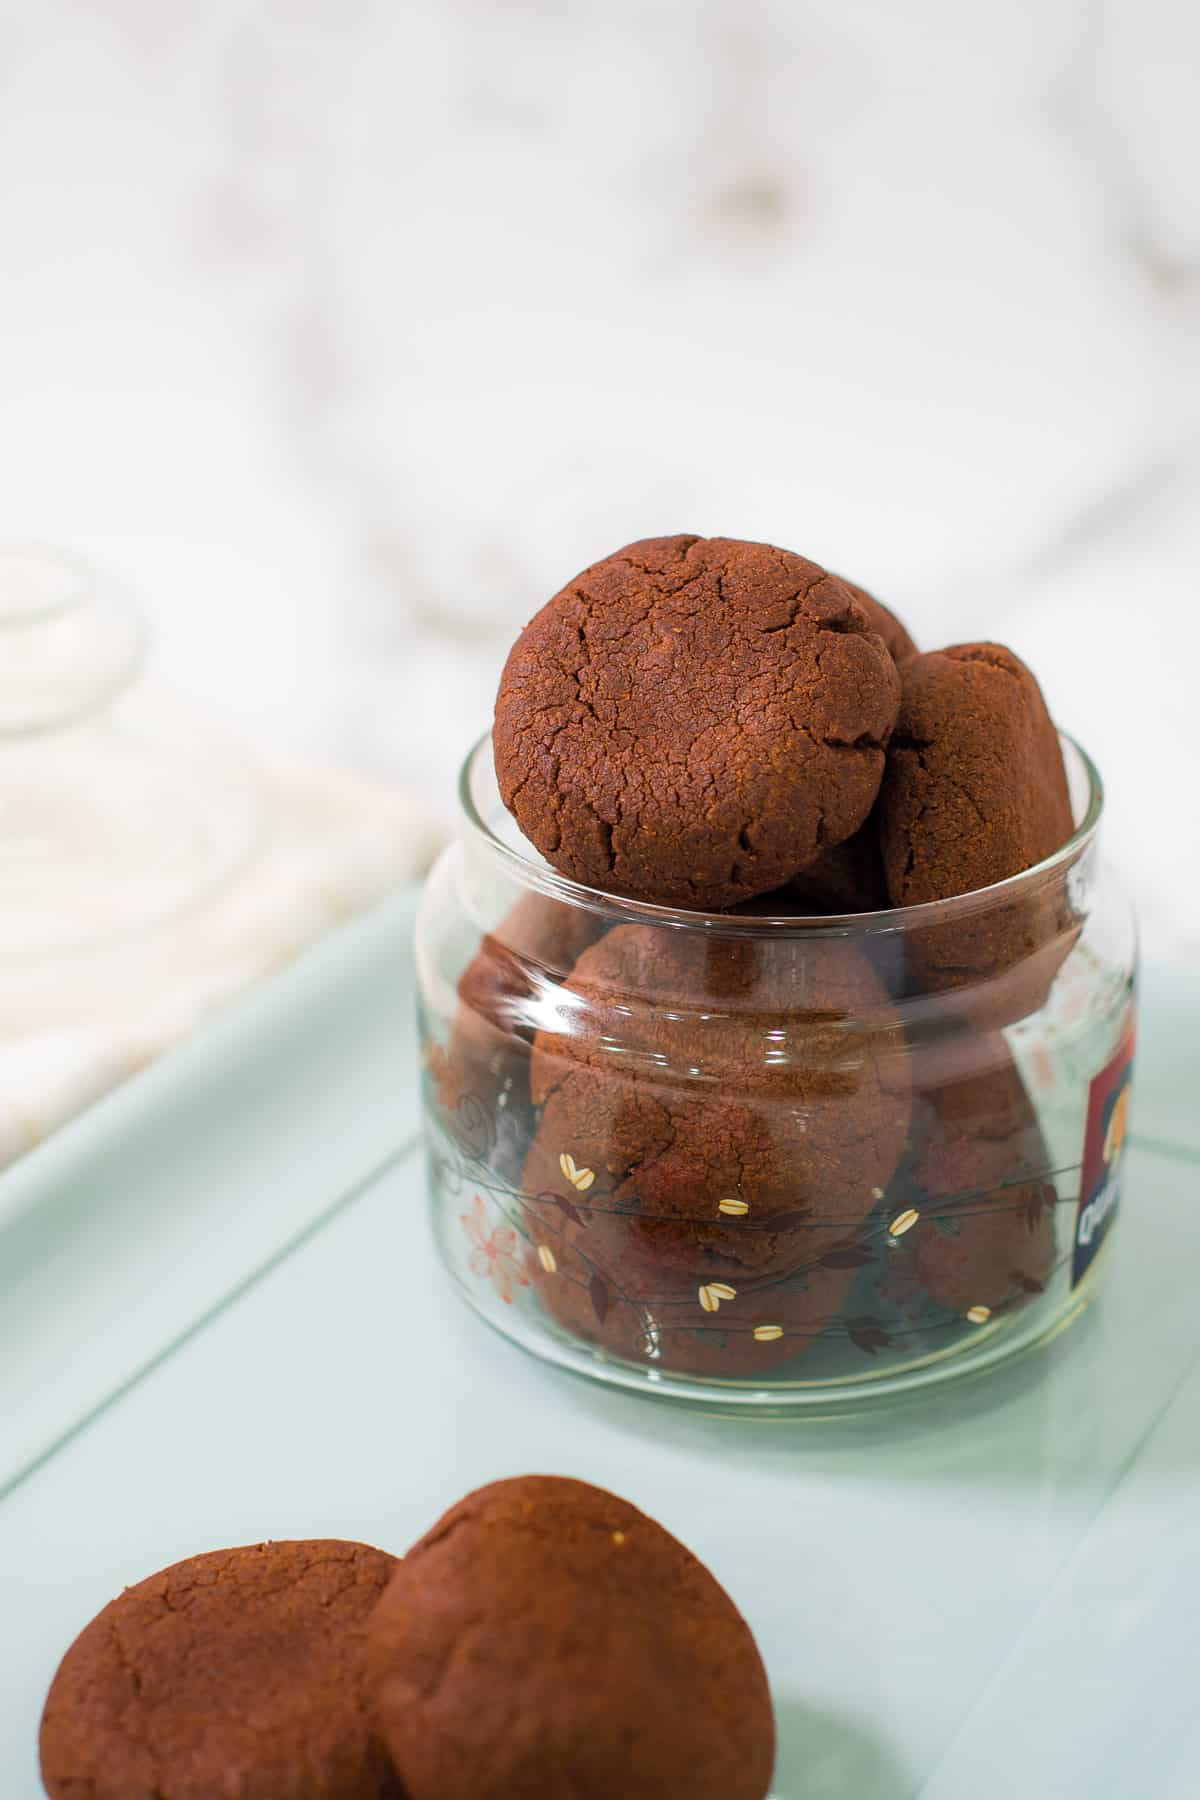 A glass jar of round chocolate cookies